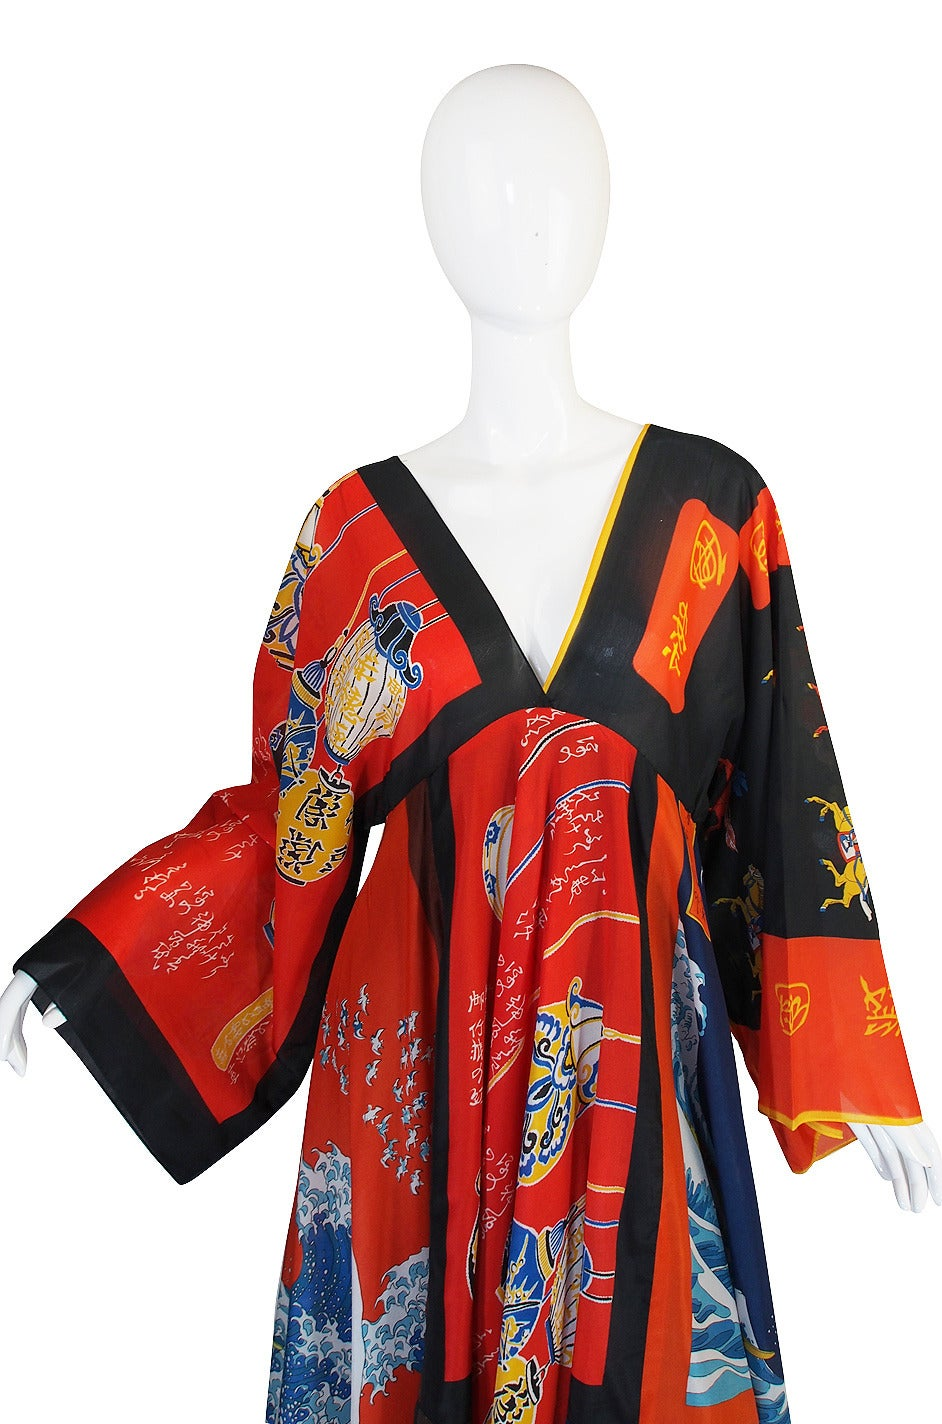 Women's Rare, Early 1970s LaVetta Silk Scarf Caftan Dress For Sale